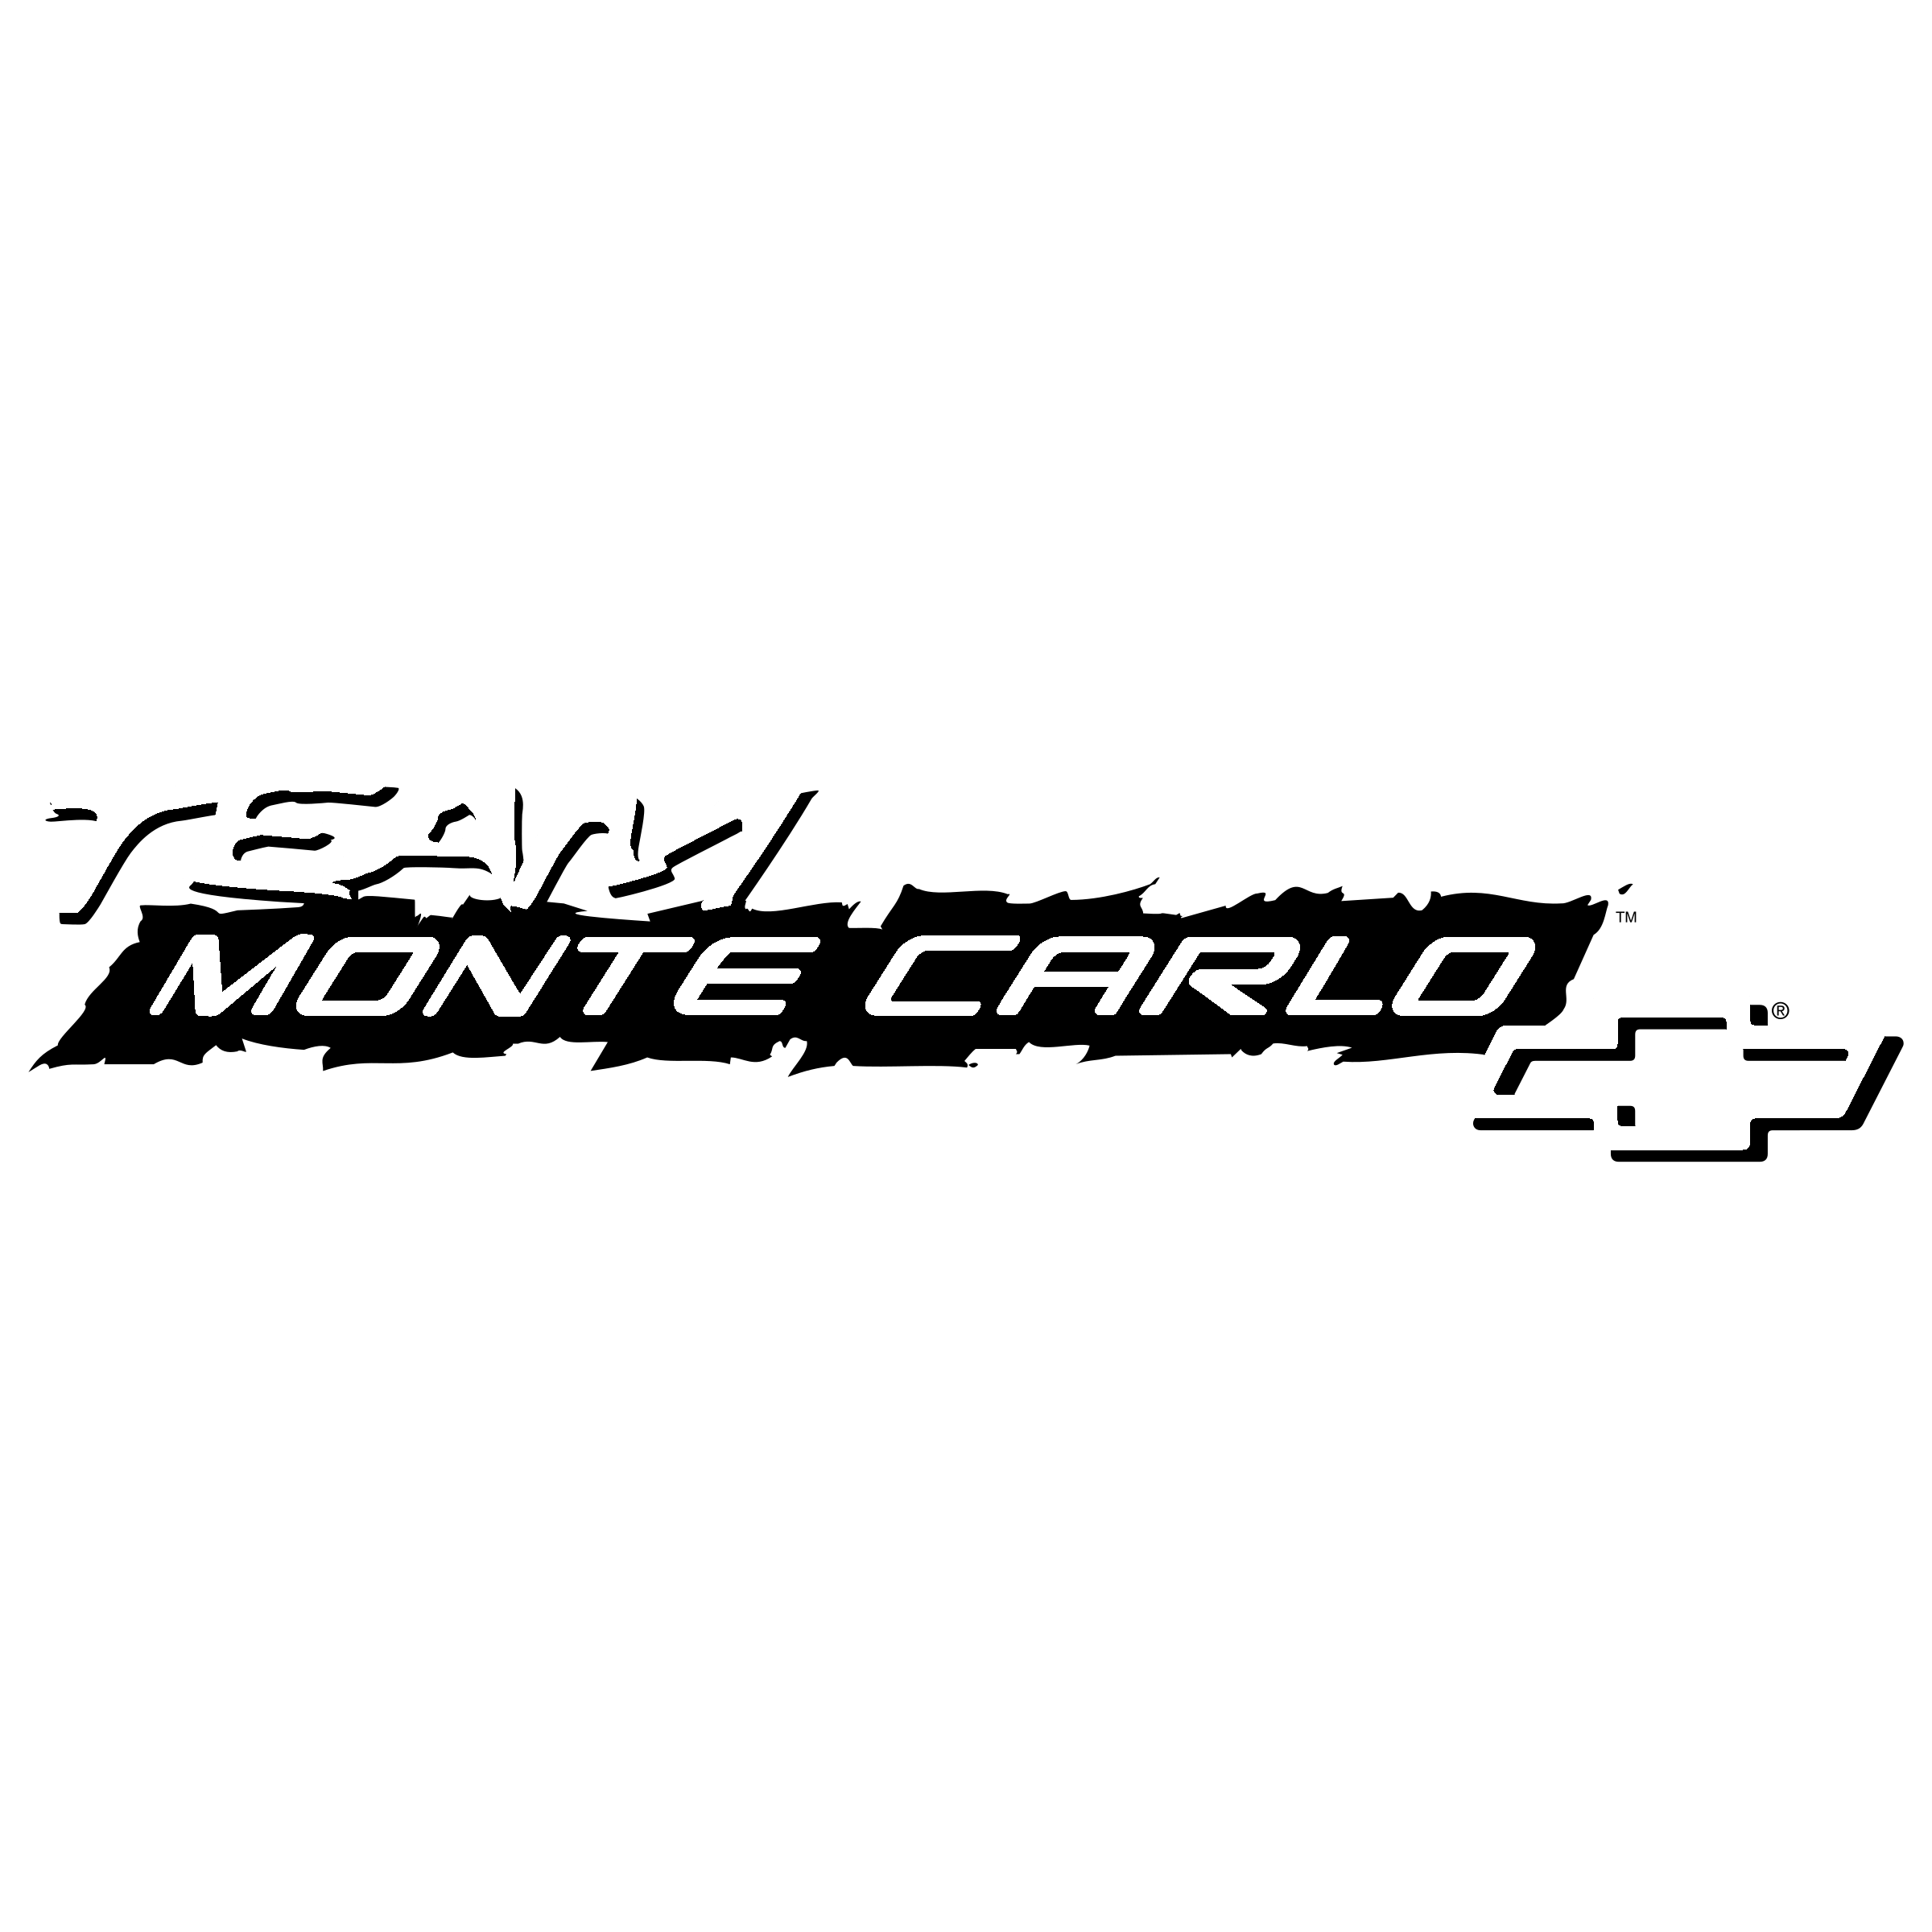 Monte Carlo Png - Chevrolet Team Monte Carlo 8936 Logo PNG Transparent & SVG Vector ...